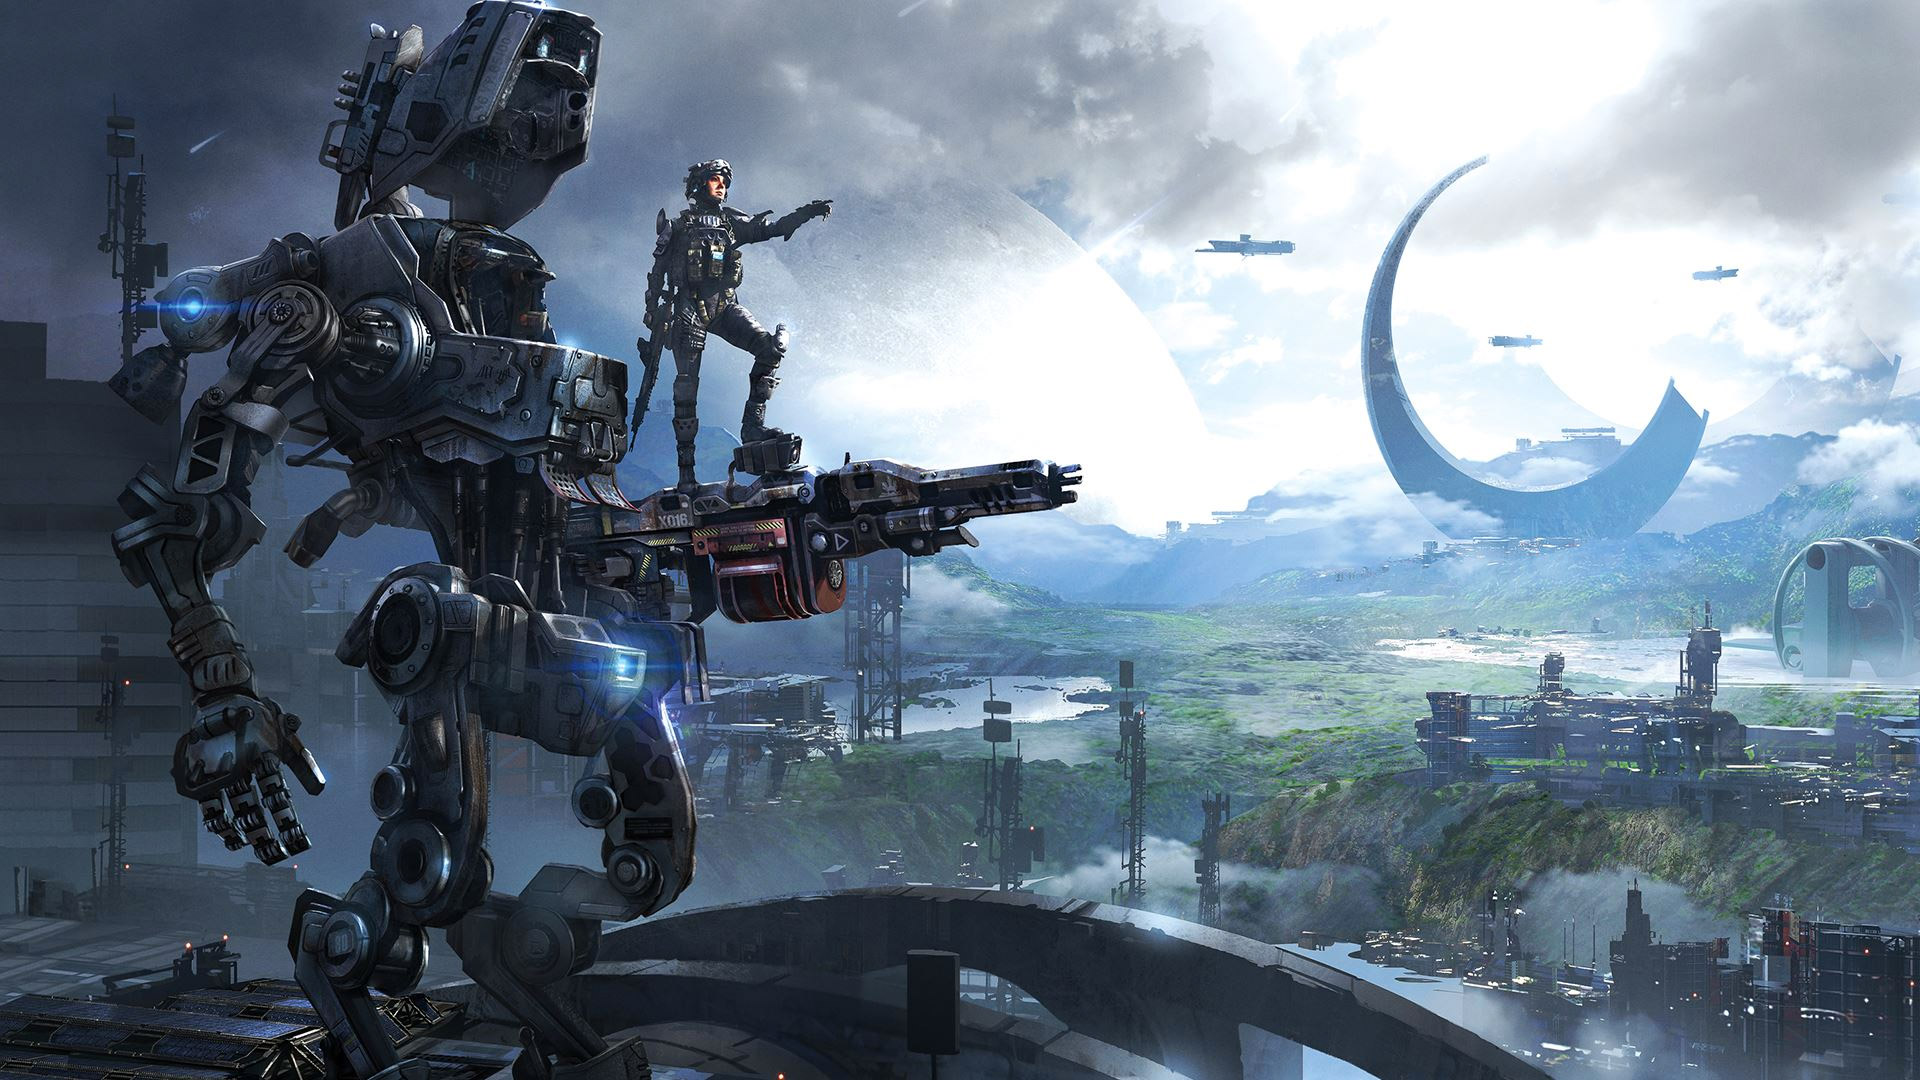 EA's Xbox One sale offers low prices on Titanfall, Battlefield 4, Peggle 2 and more